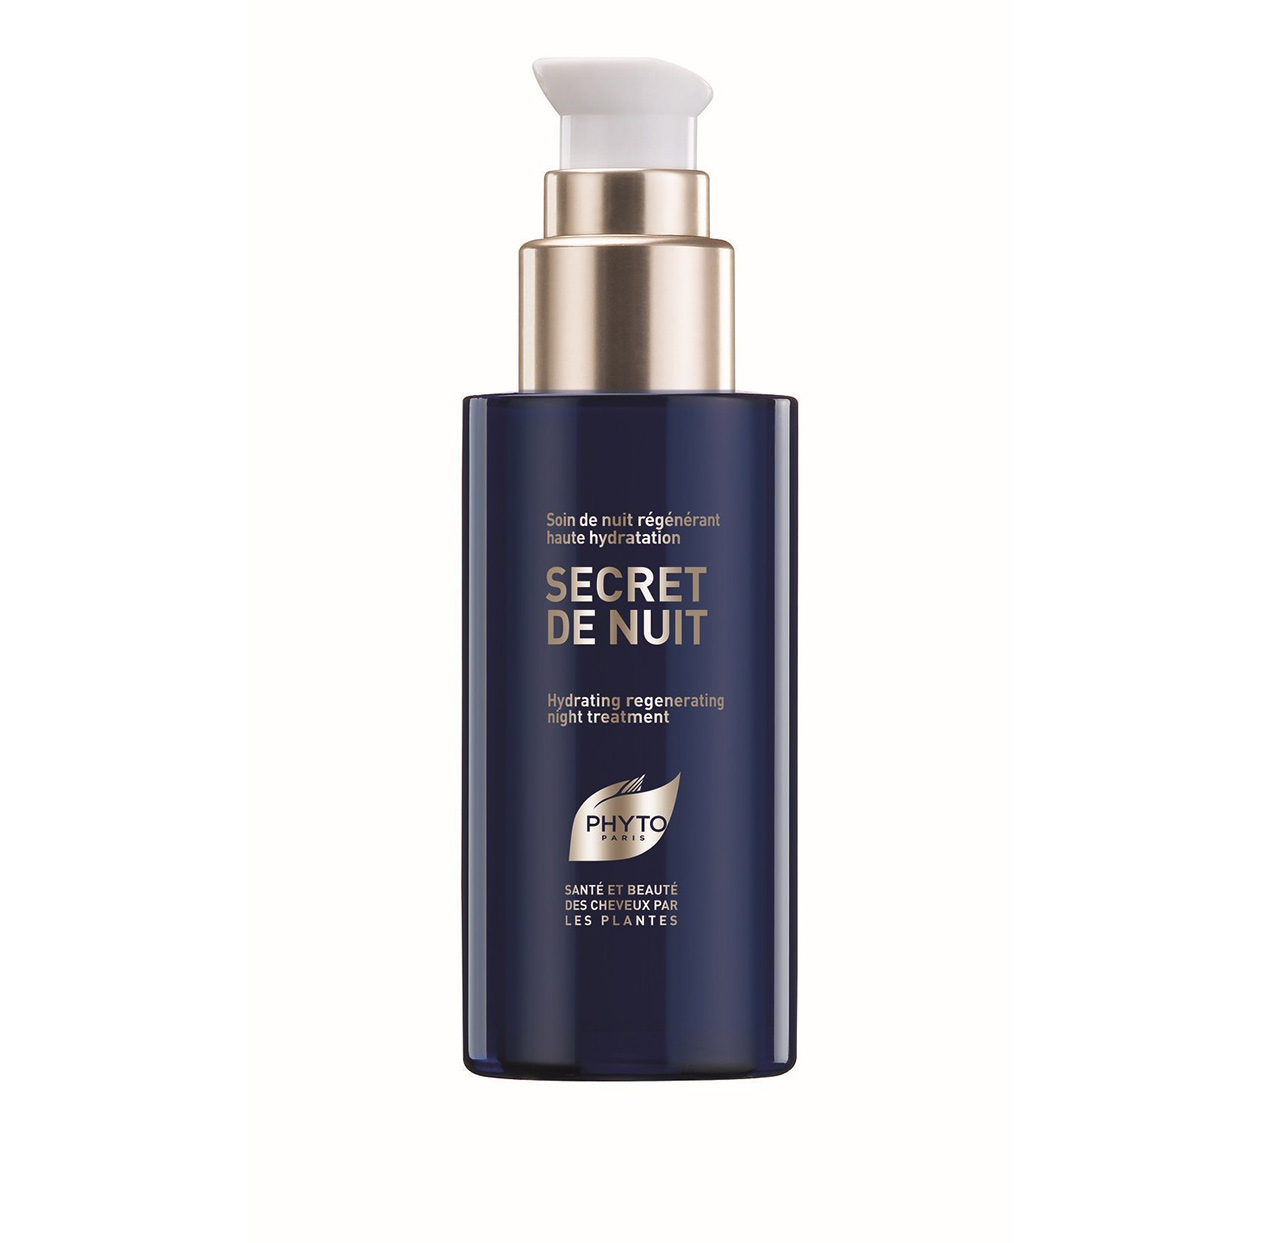 Phyto secret de nuit